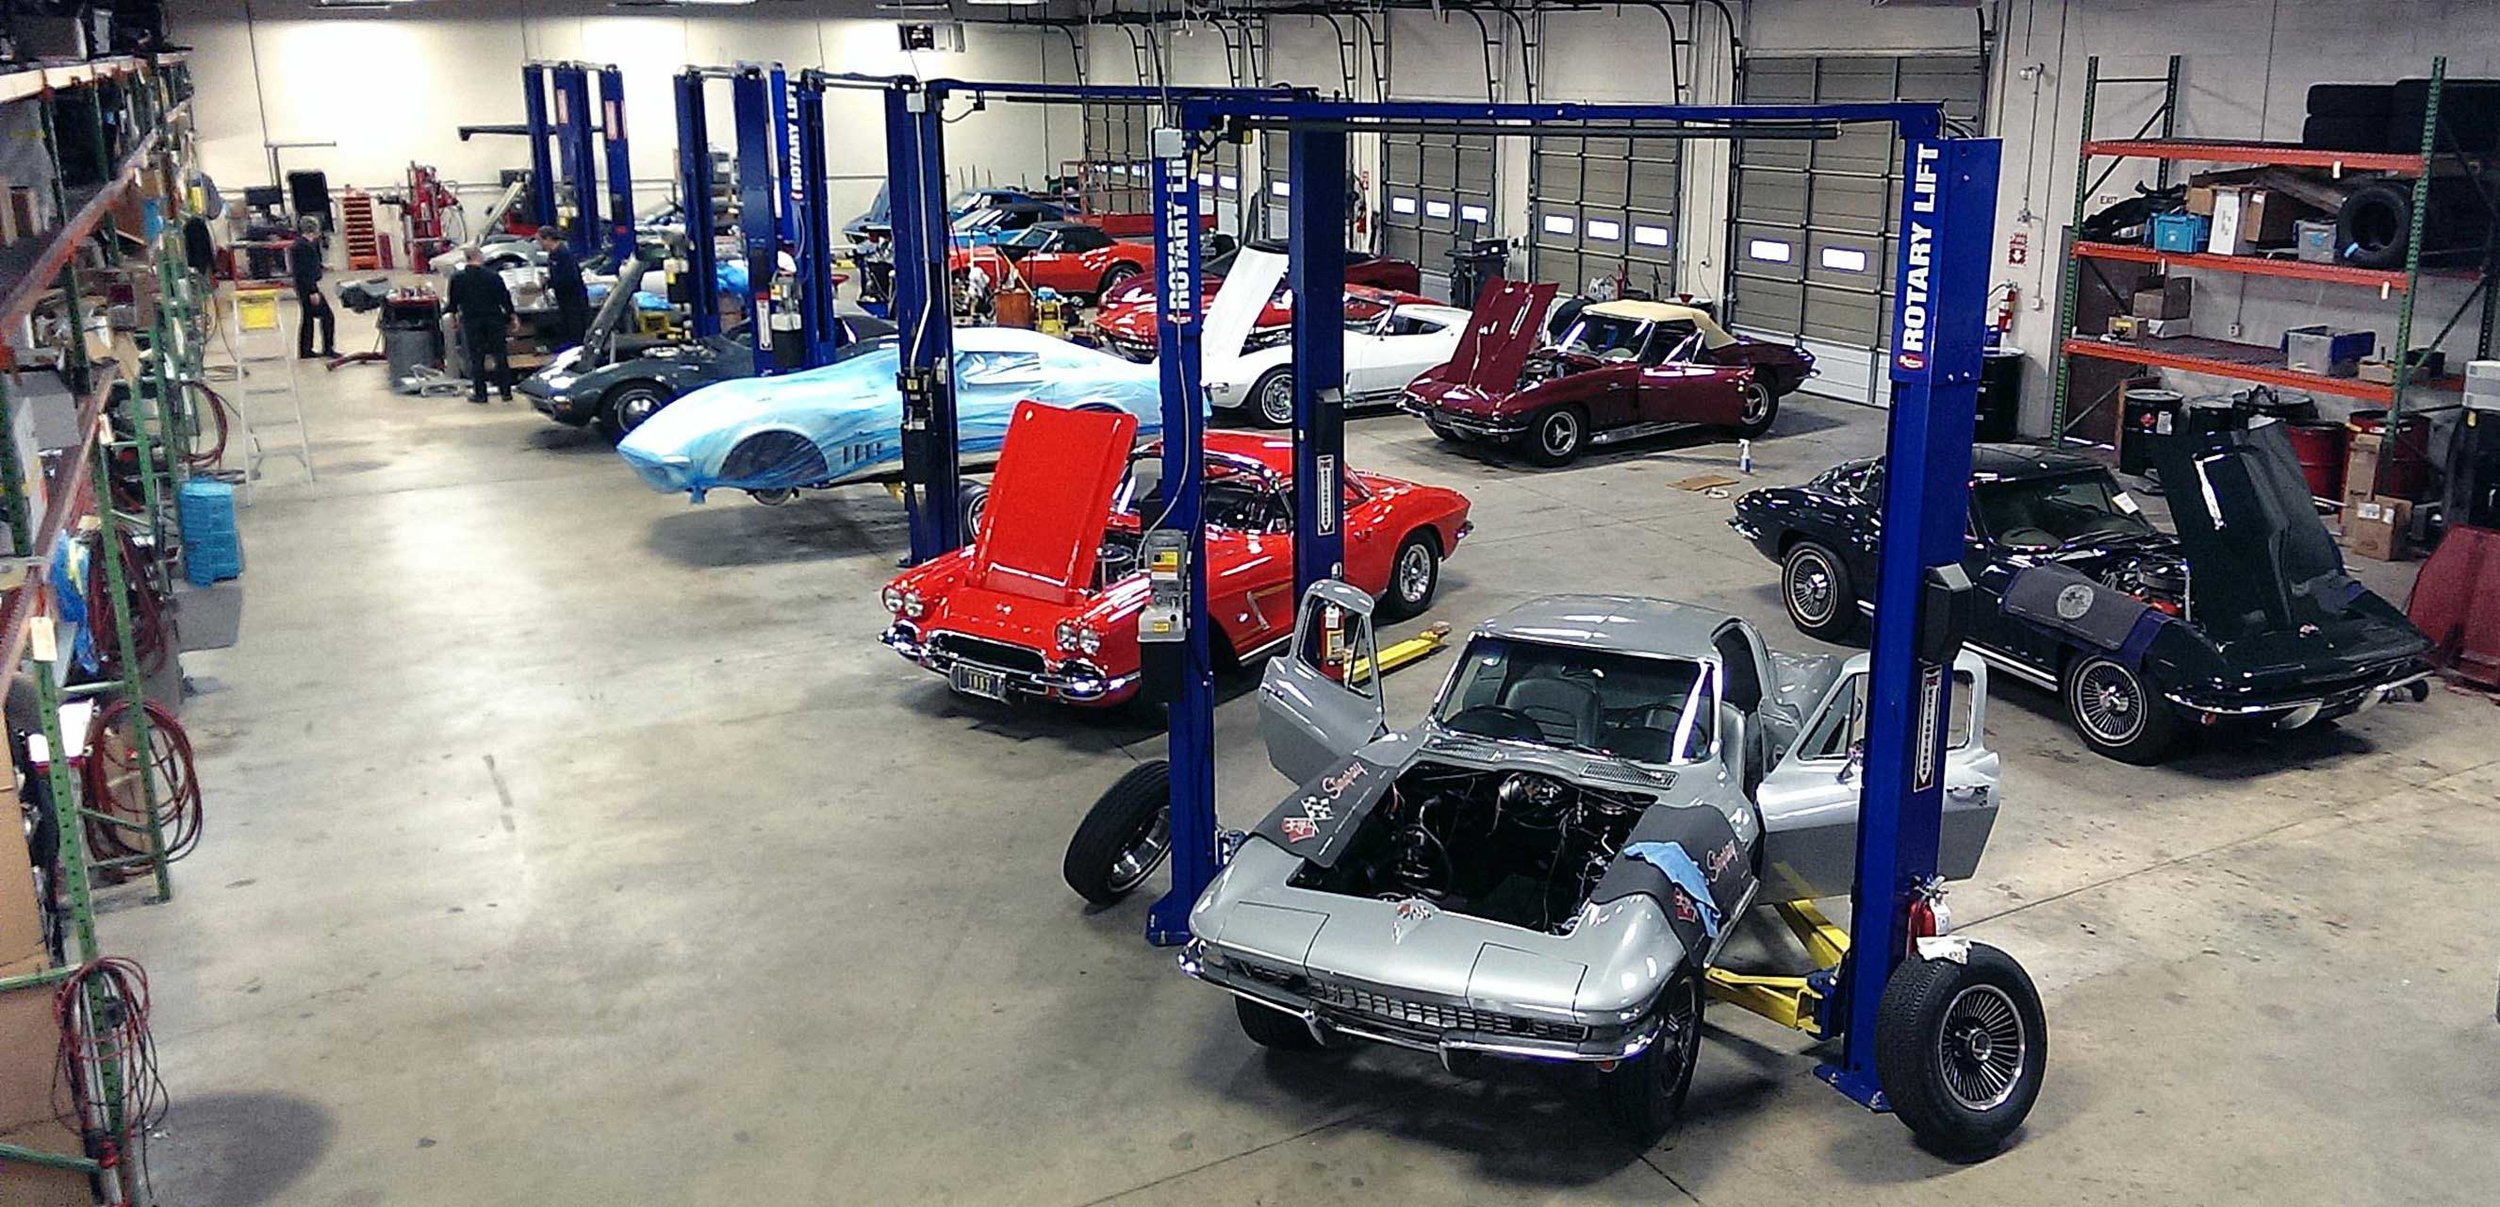 21743487_10156641507133761_8430569635151297745_o Cool Review About Corvettes for Sale In Md with Extraordinary Images Cars Review